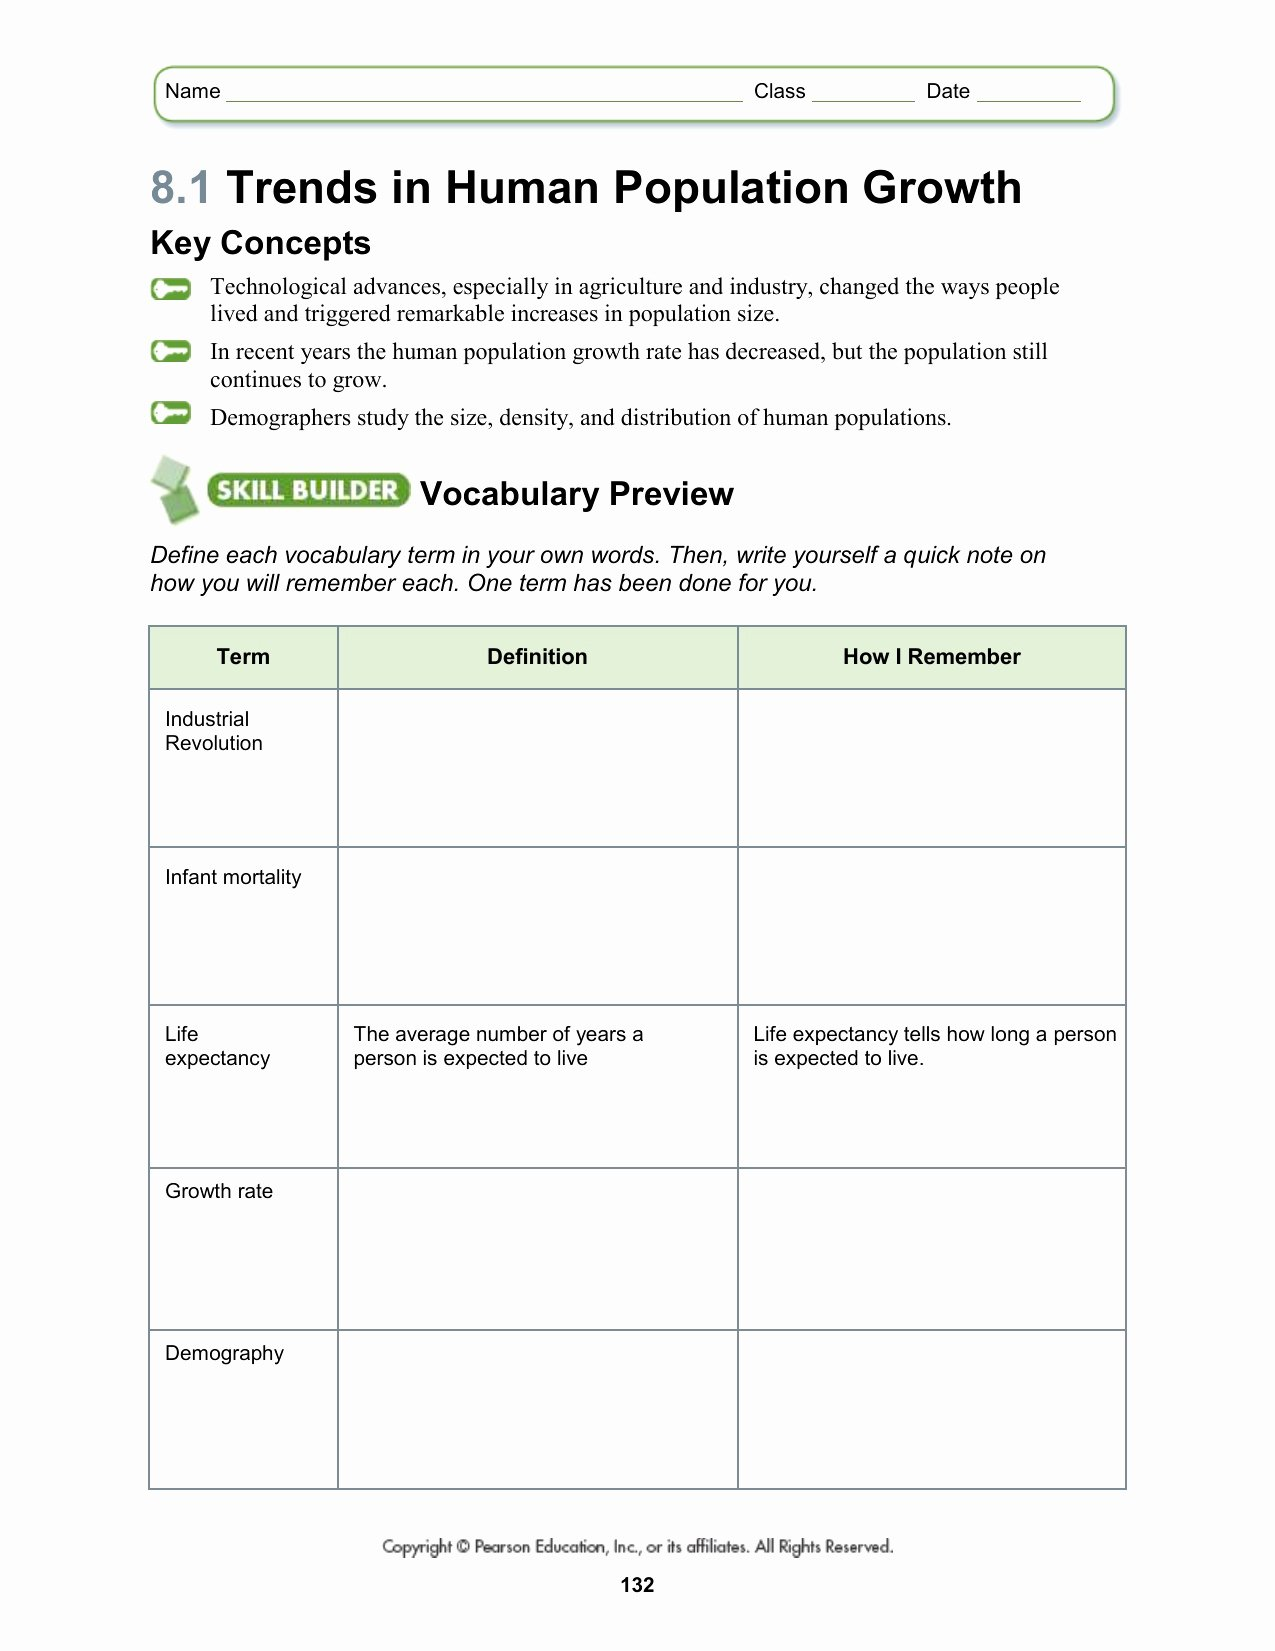 Population Growth Worksheet Answers Inspirational Human Population Growth Worksheet the Best Worksheets